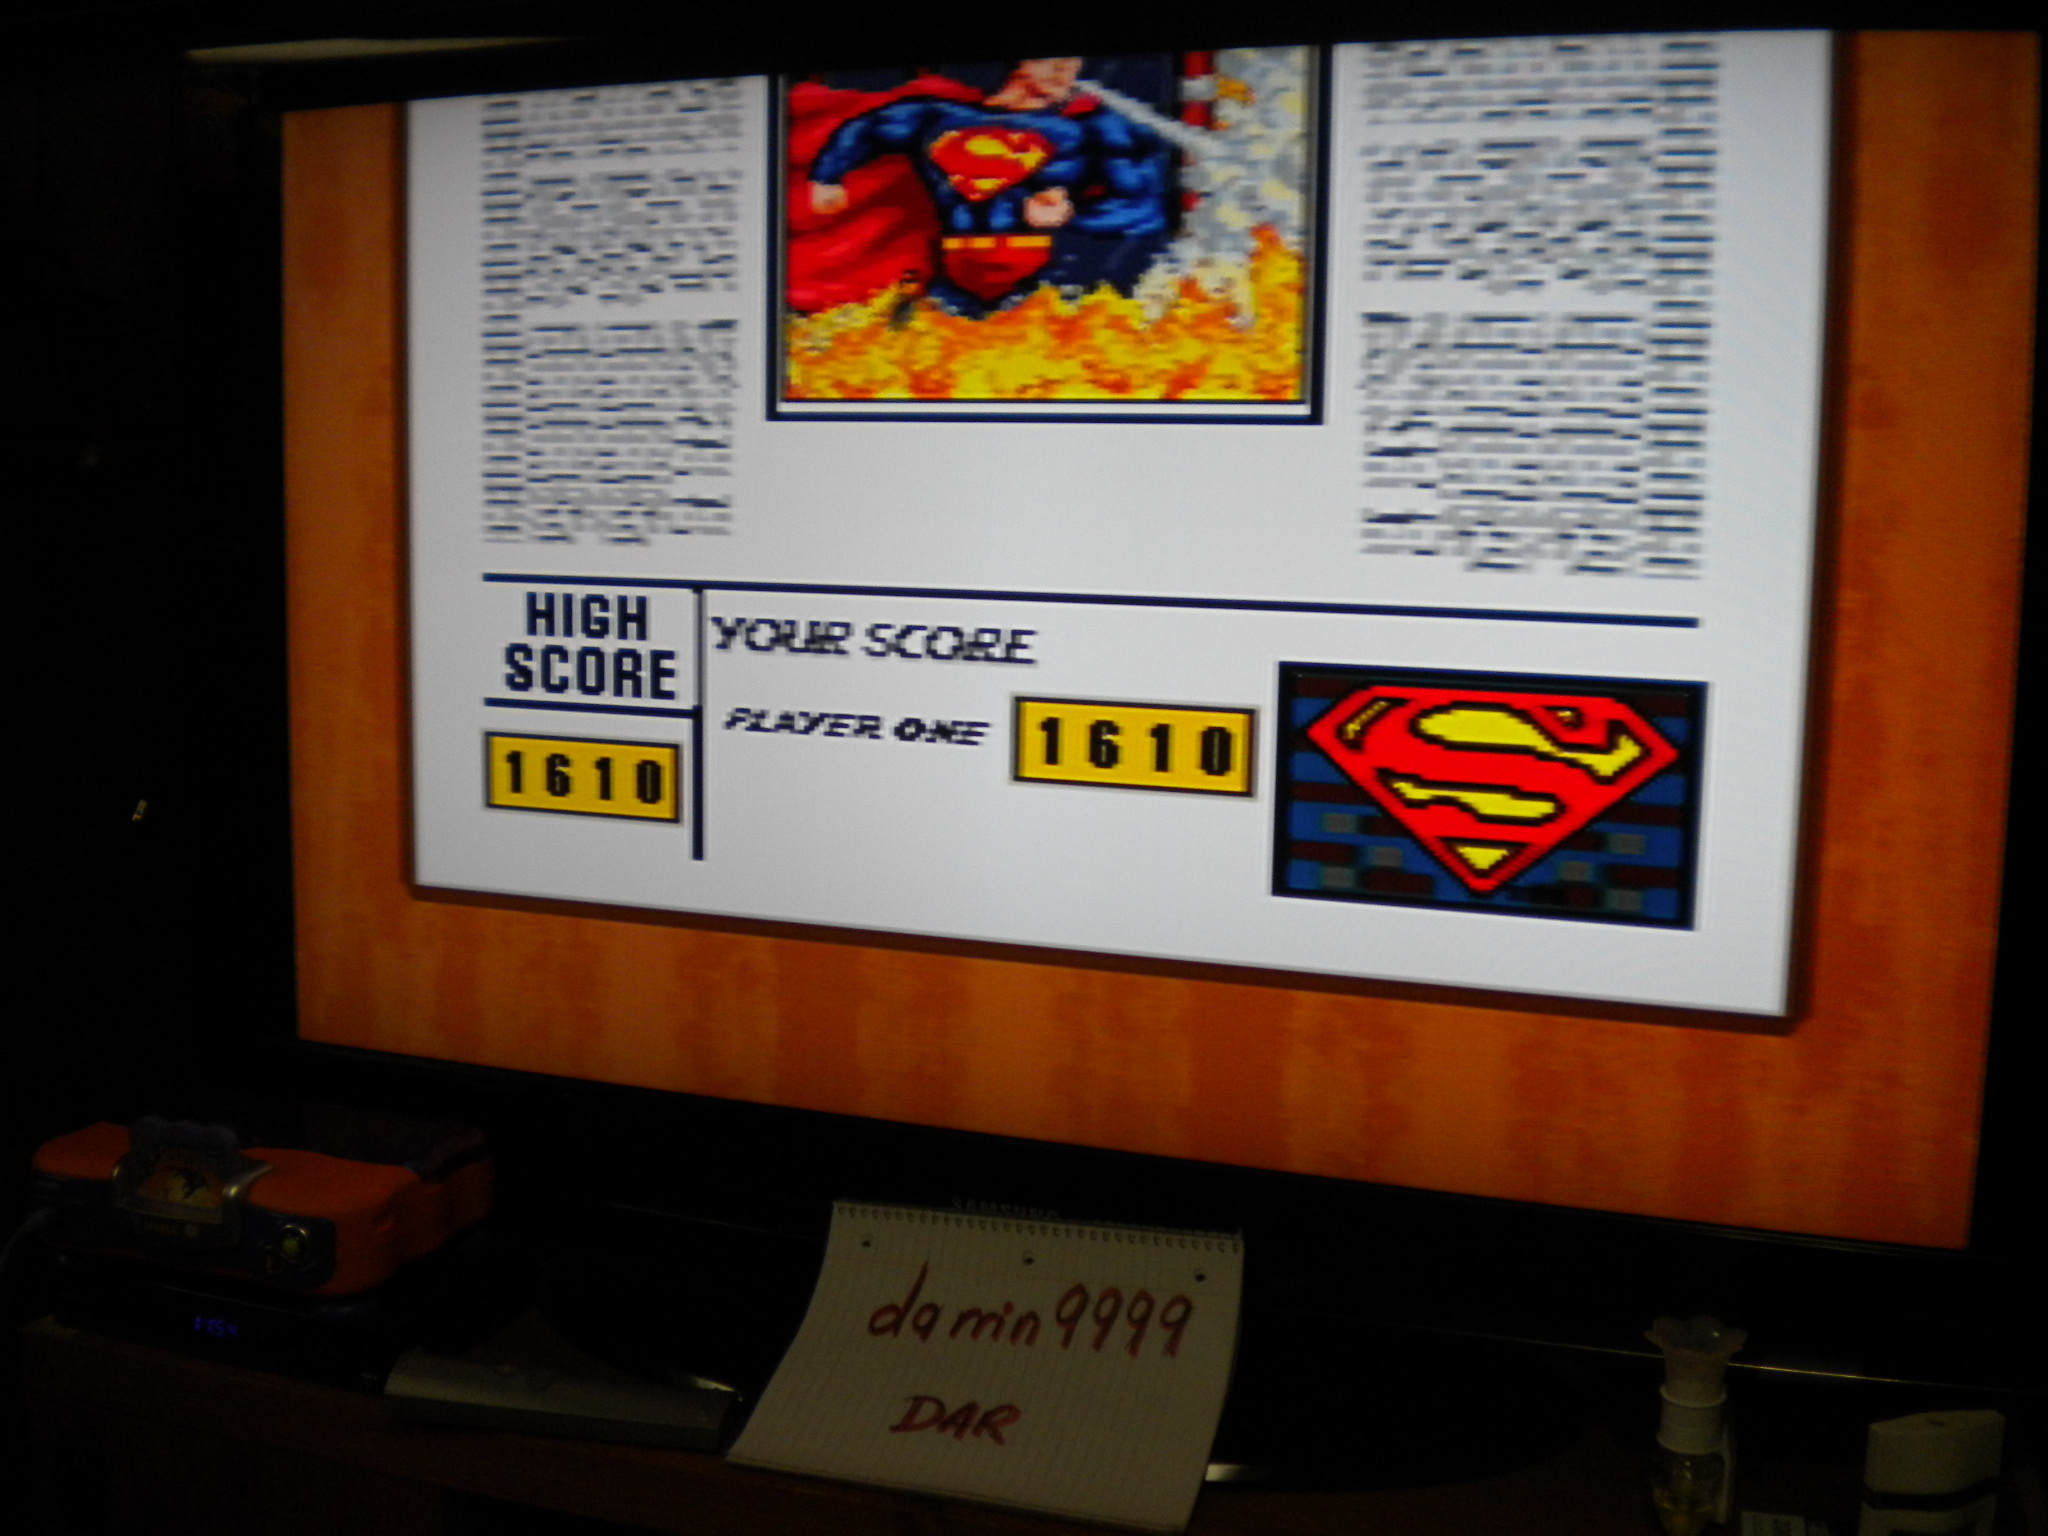 Superman: The Greatest Hero [Easy] 1,610 points